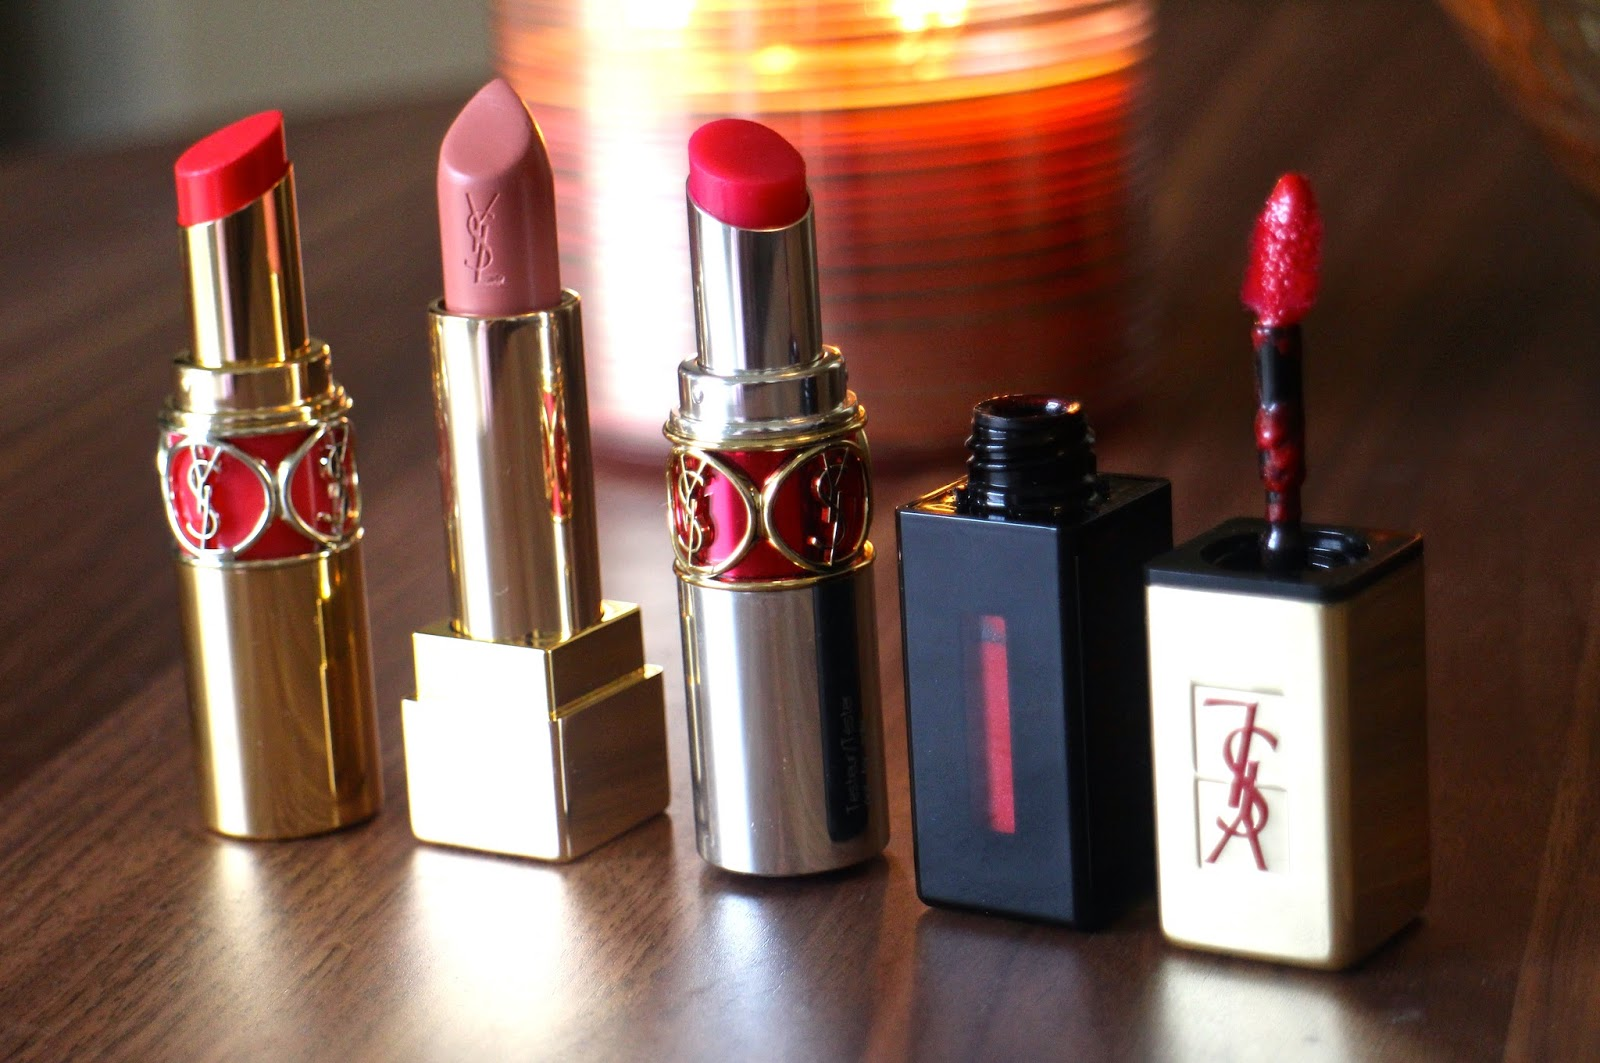 YSL Lip products